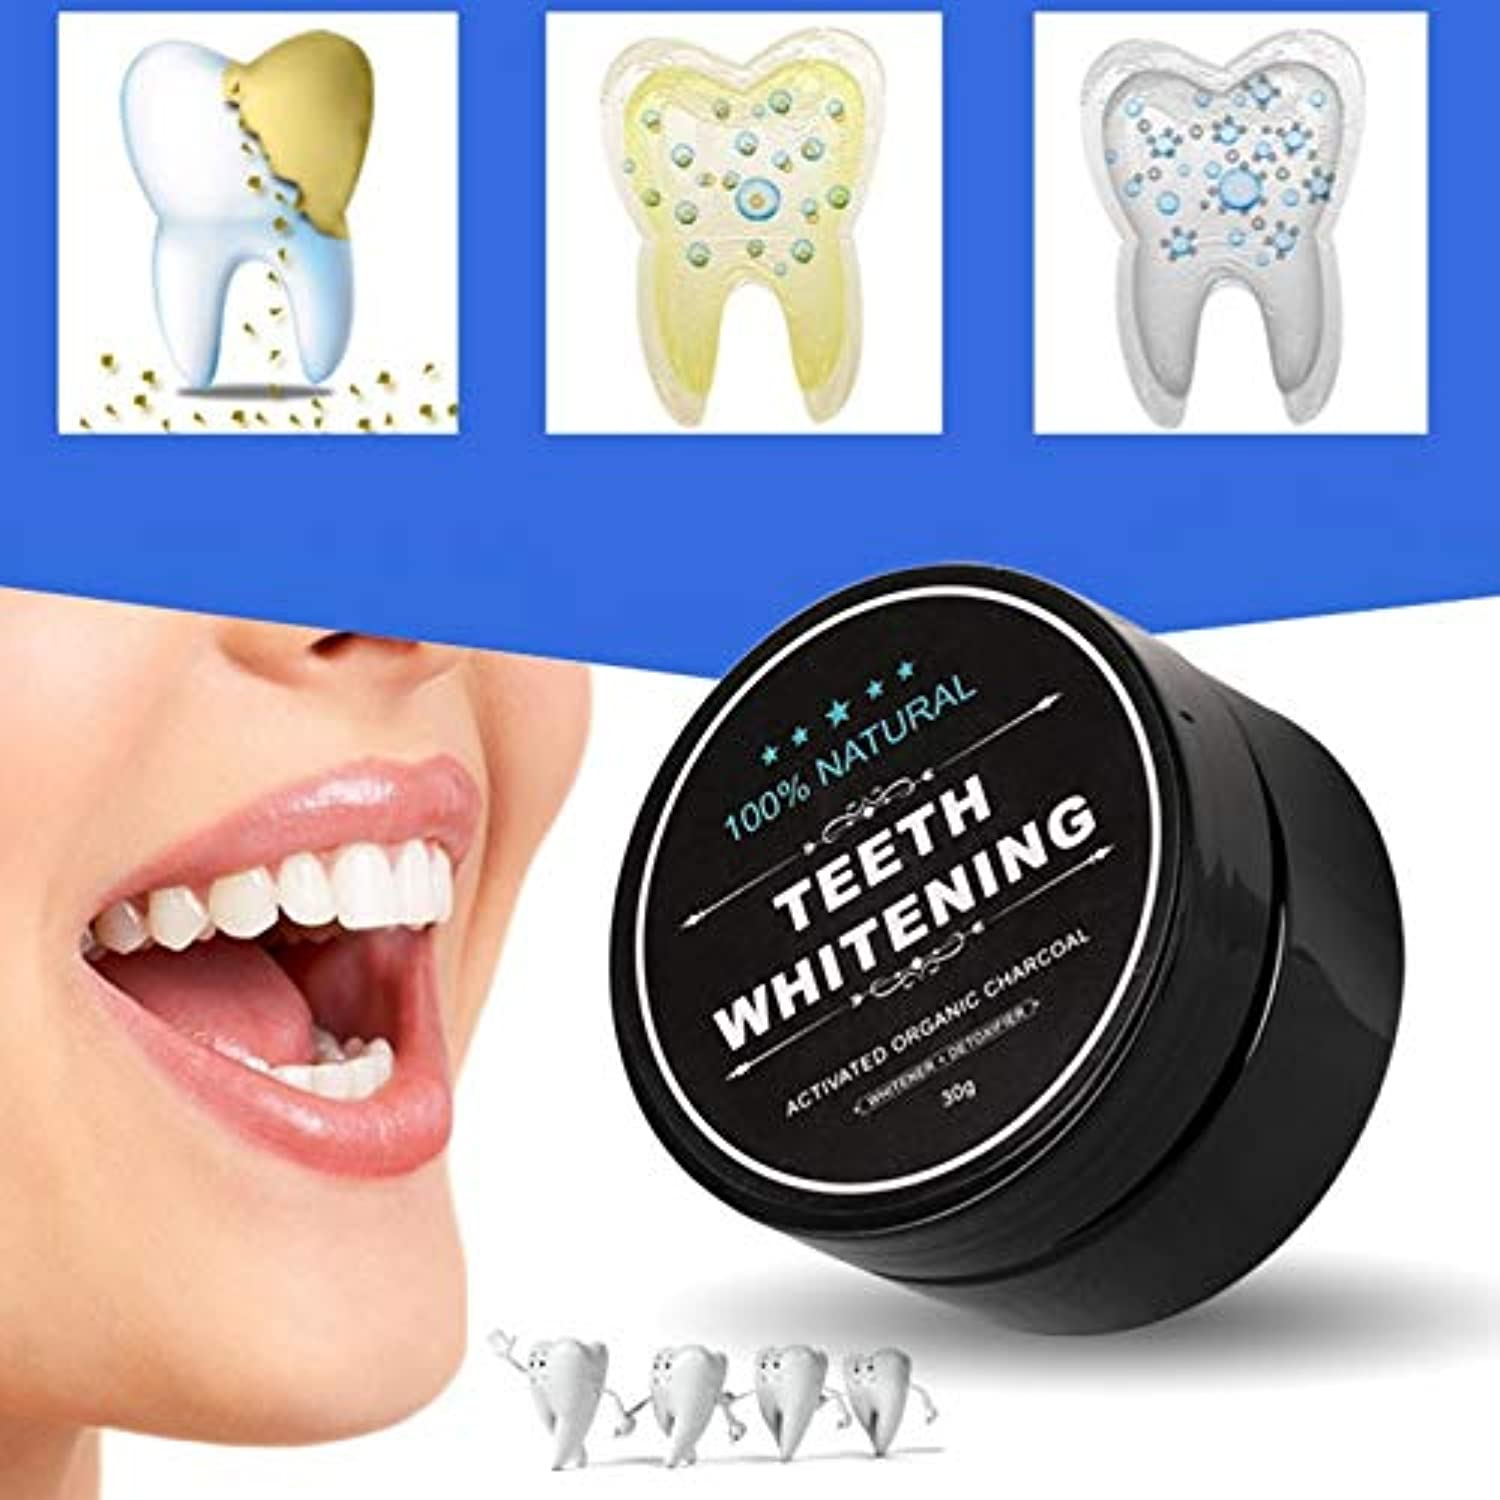 Classier: Buy FOXTSPORT Teeth Whitening Charcoal Powder, Natural Activated Charcoal Teeth Whitener Powder with Bamboo Brush Oral Care Set (1.05 oz)